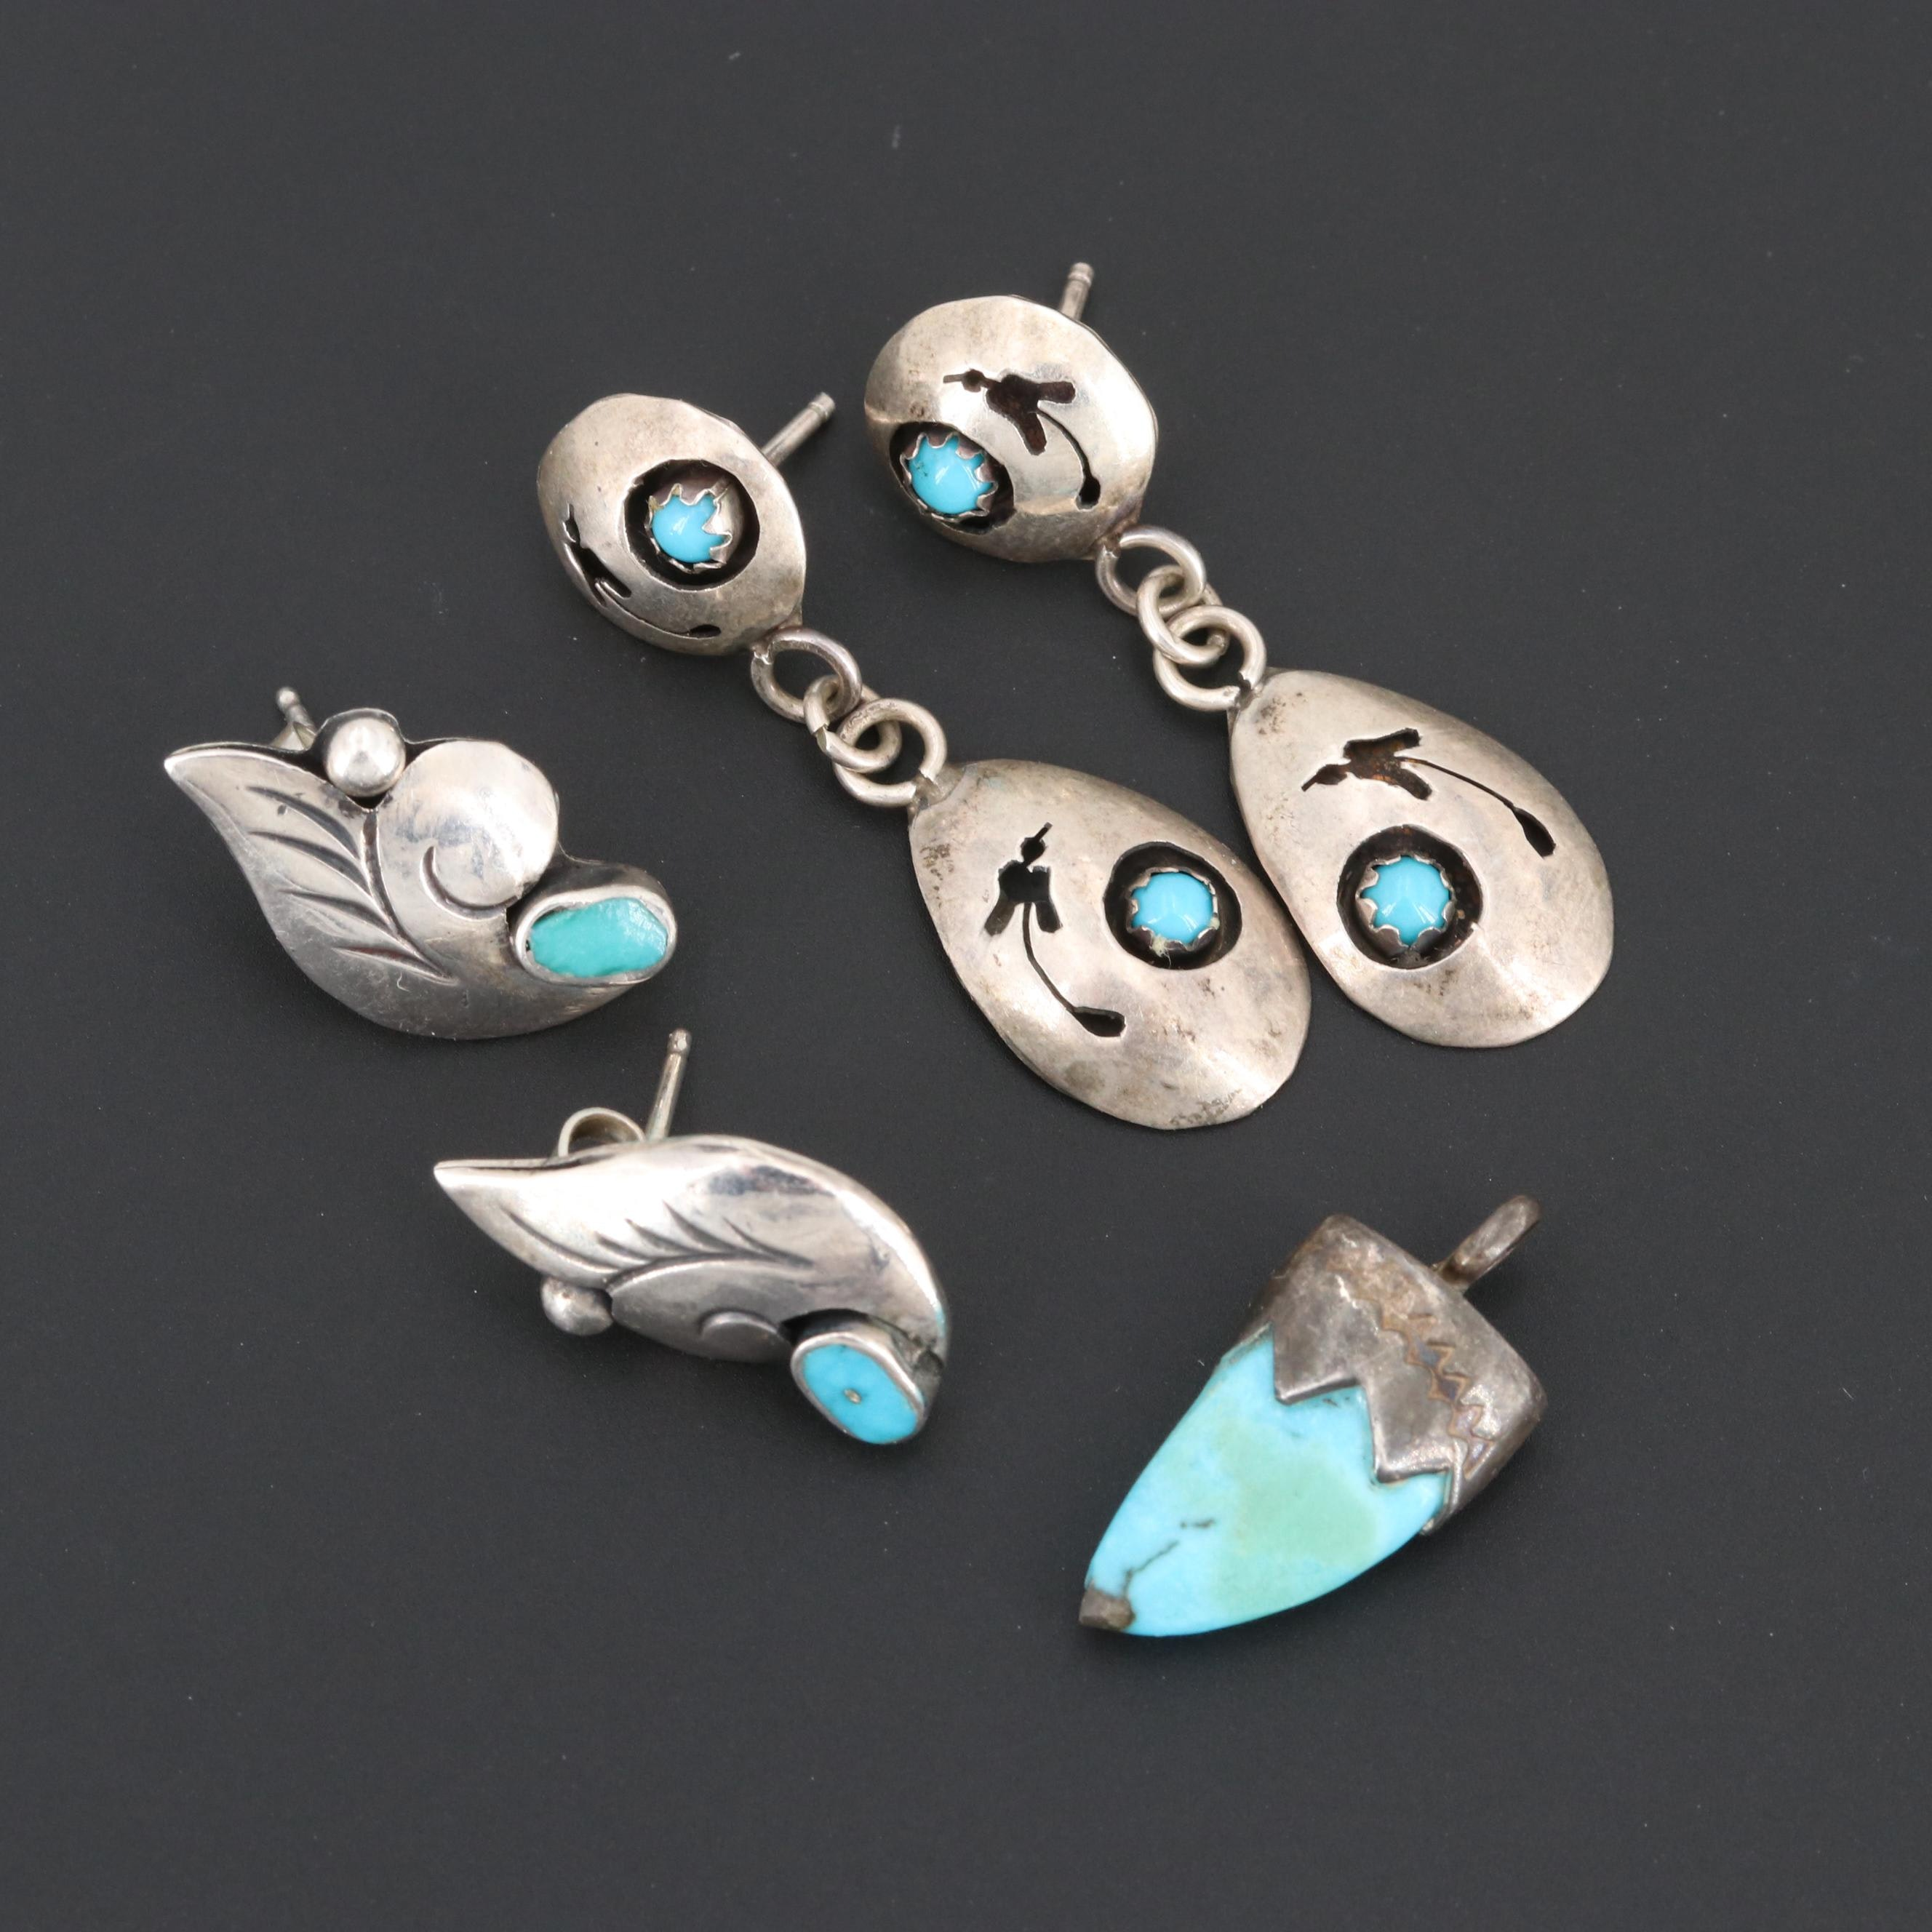 Southwest Sterling Silver Turquoise Earrings and Pendant